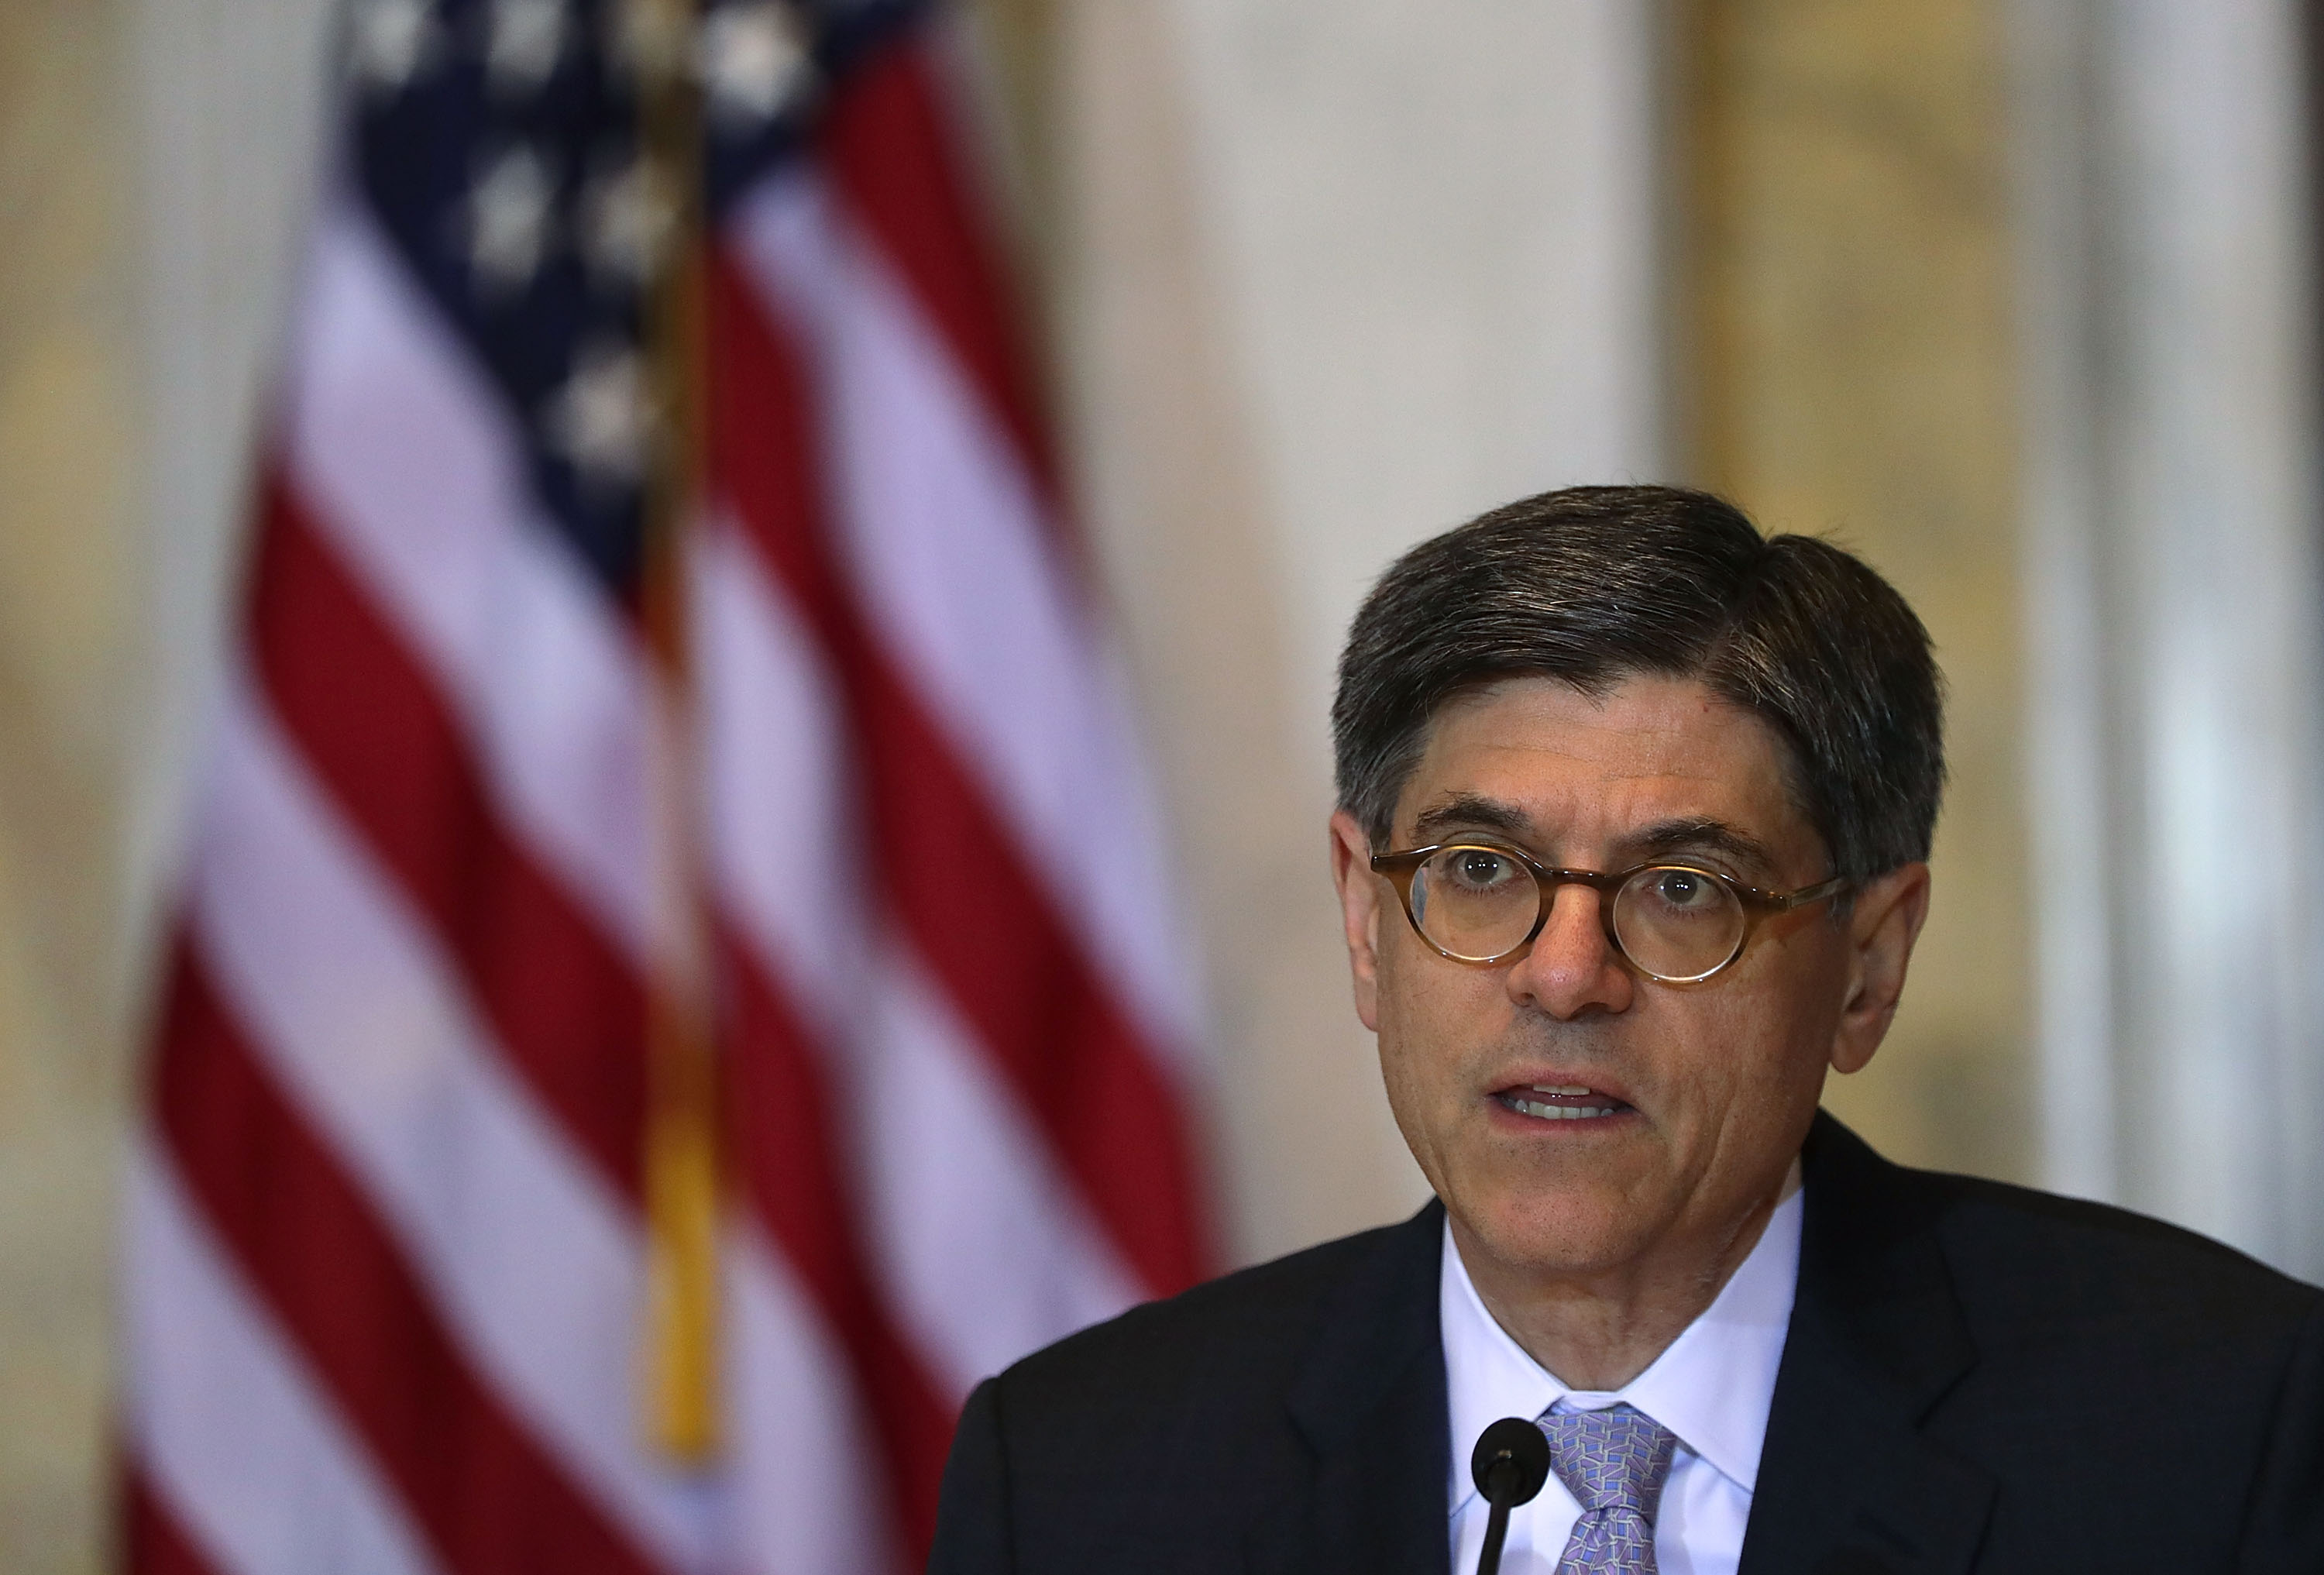 U.S. Secretary of the Treasury Jacob Lew speaks during a meeting of the Financial Stability Oversight Council June 21, 2016 in Washington, DC. The council held a meeting on its  2016 annual report, with an agenda that includes: an update on market developments; discussion of the Board of Governors of the Federal Reserve System's proposed rulemaking that would apply to certain insurance companies; and a discussion of the annual re-evaluation of the designation of a nonbank financial company.    Alex Wong—Getty Images